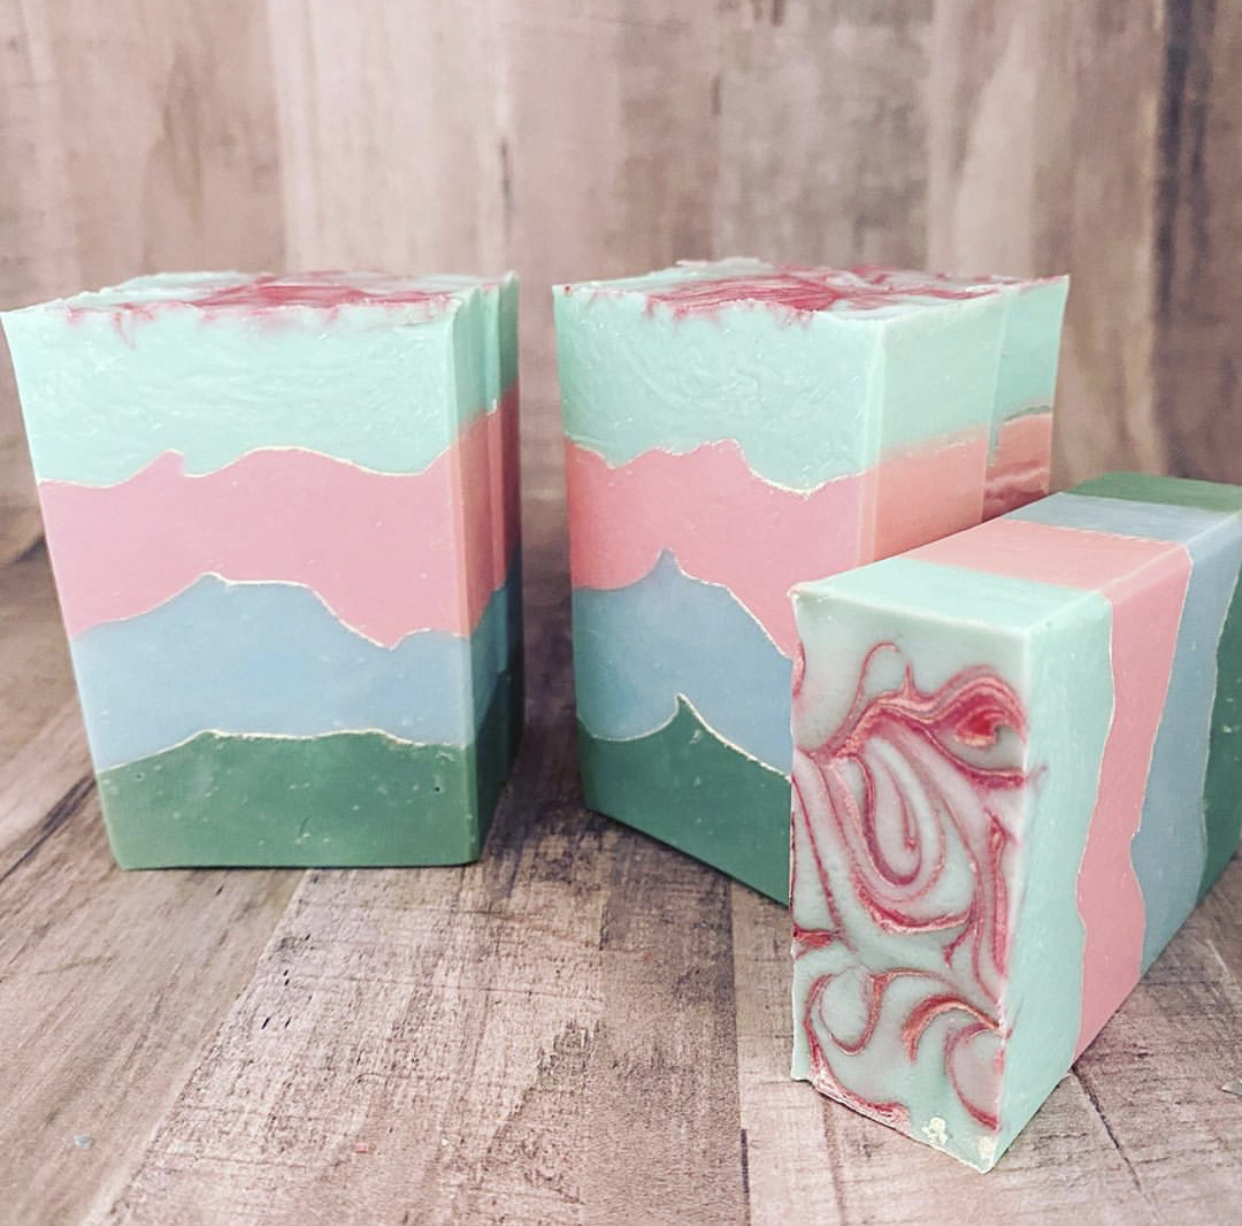 paige rsquo s pink peony soap